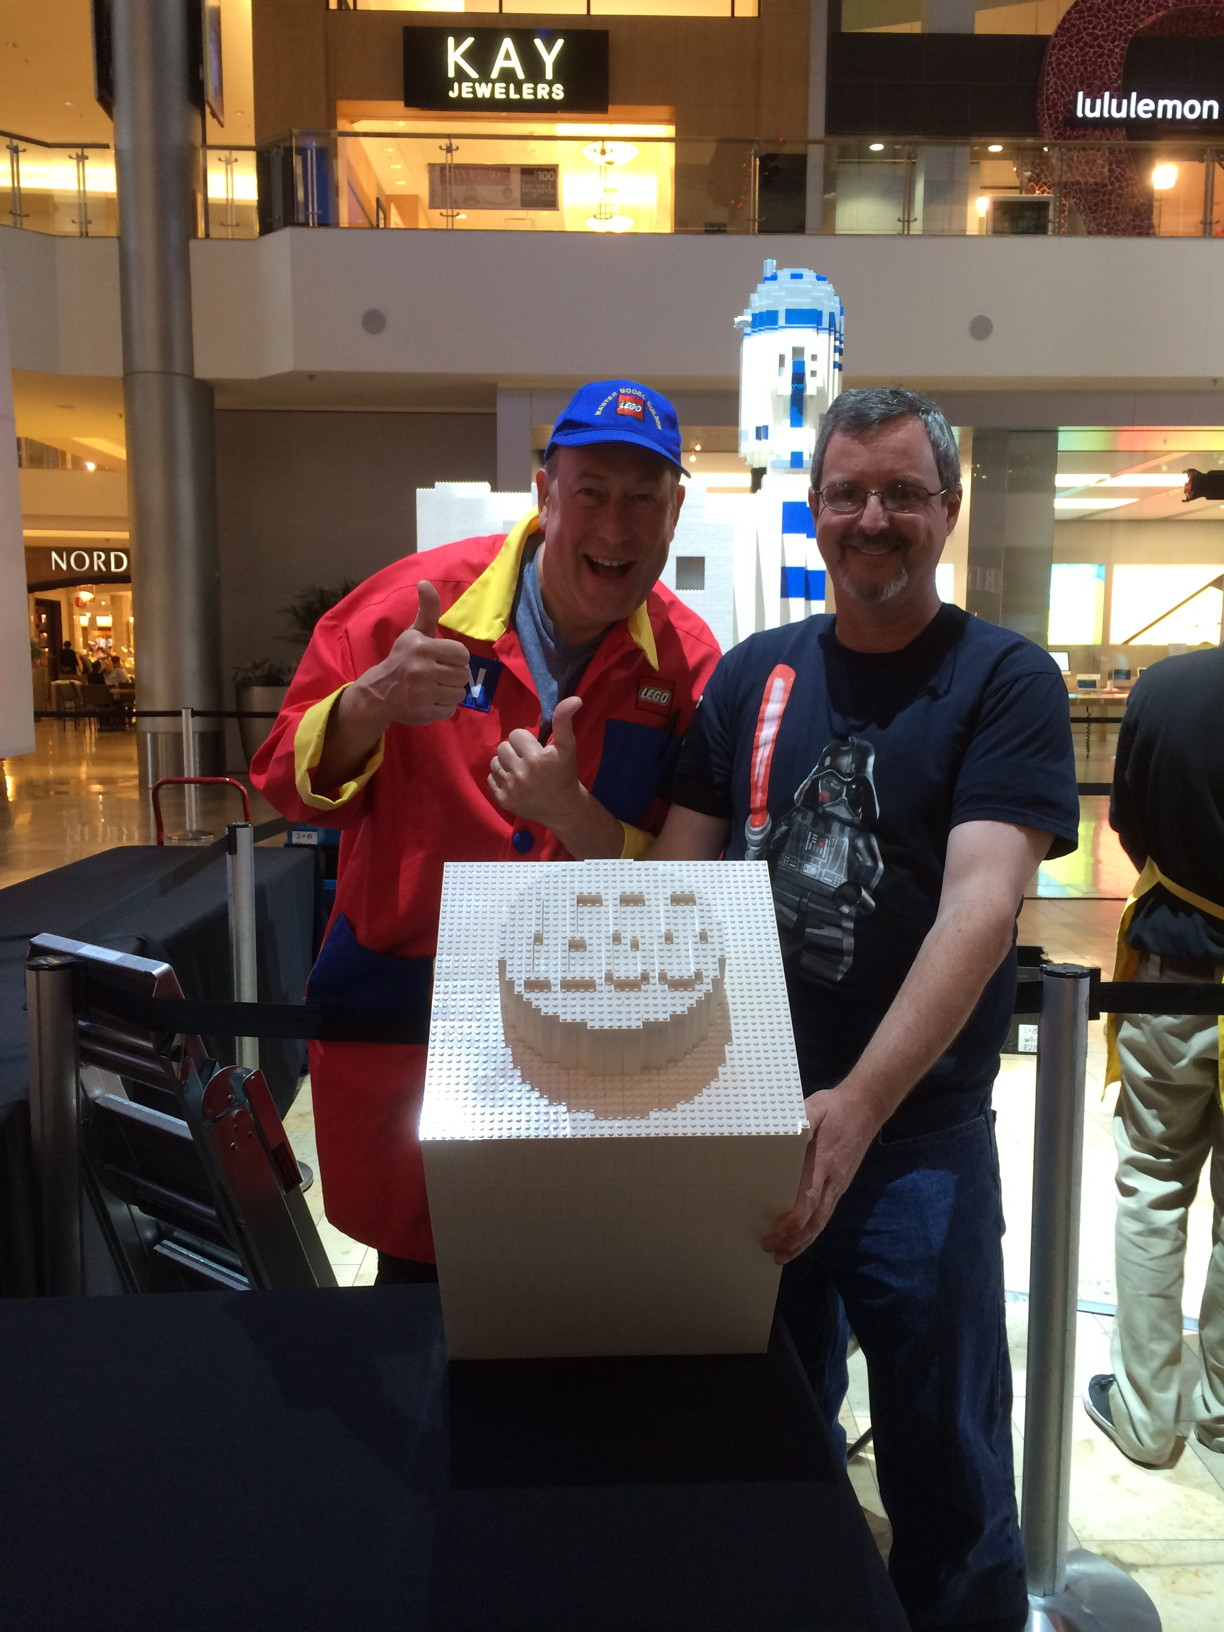 LEGO Master Model Builder Dan S. with LUGVegas Founder Timothy N.